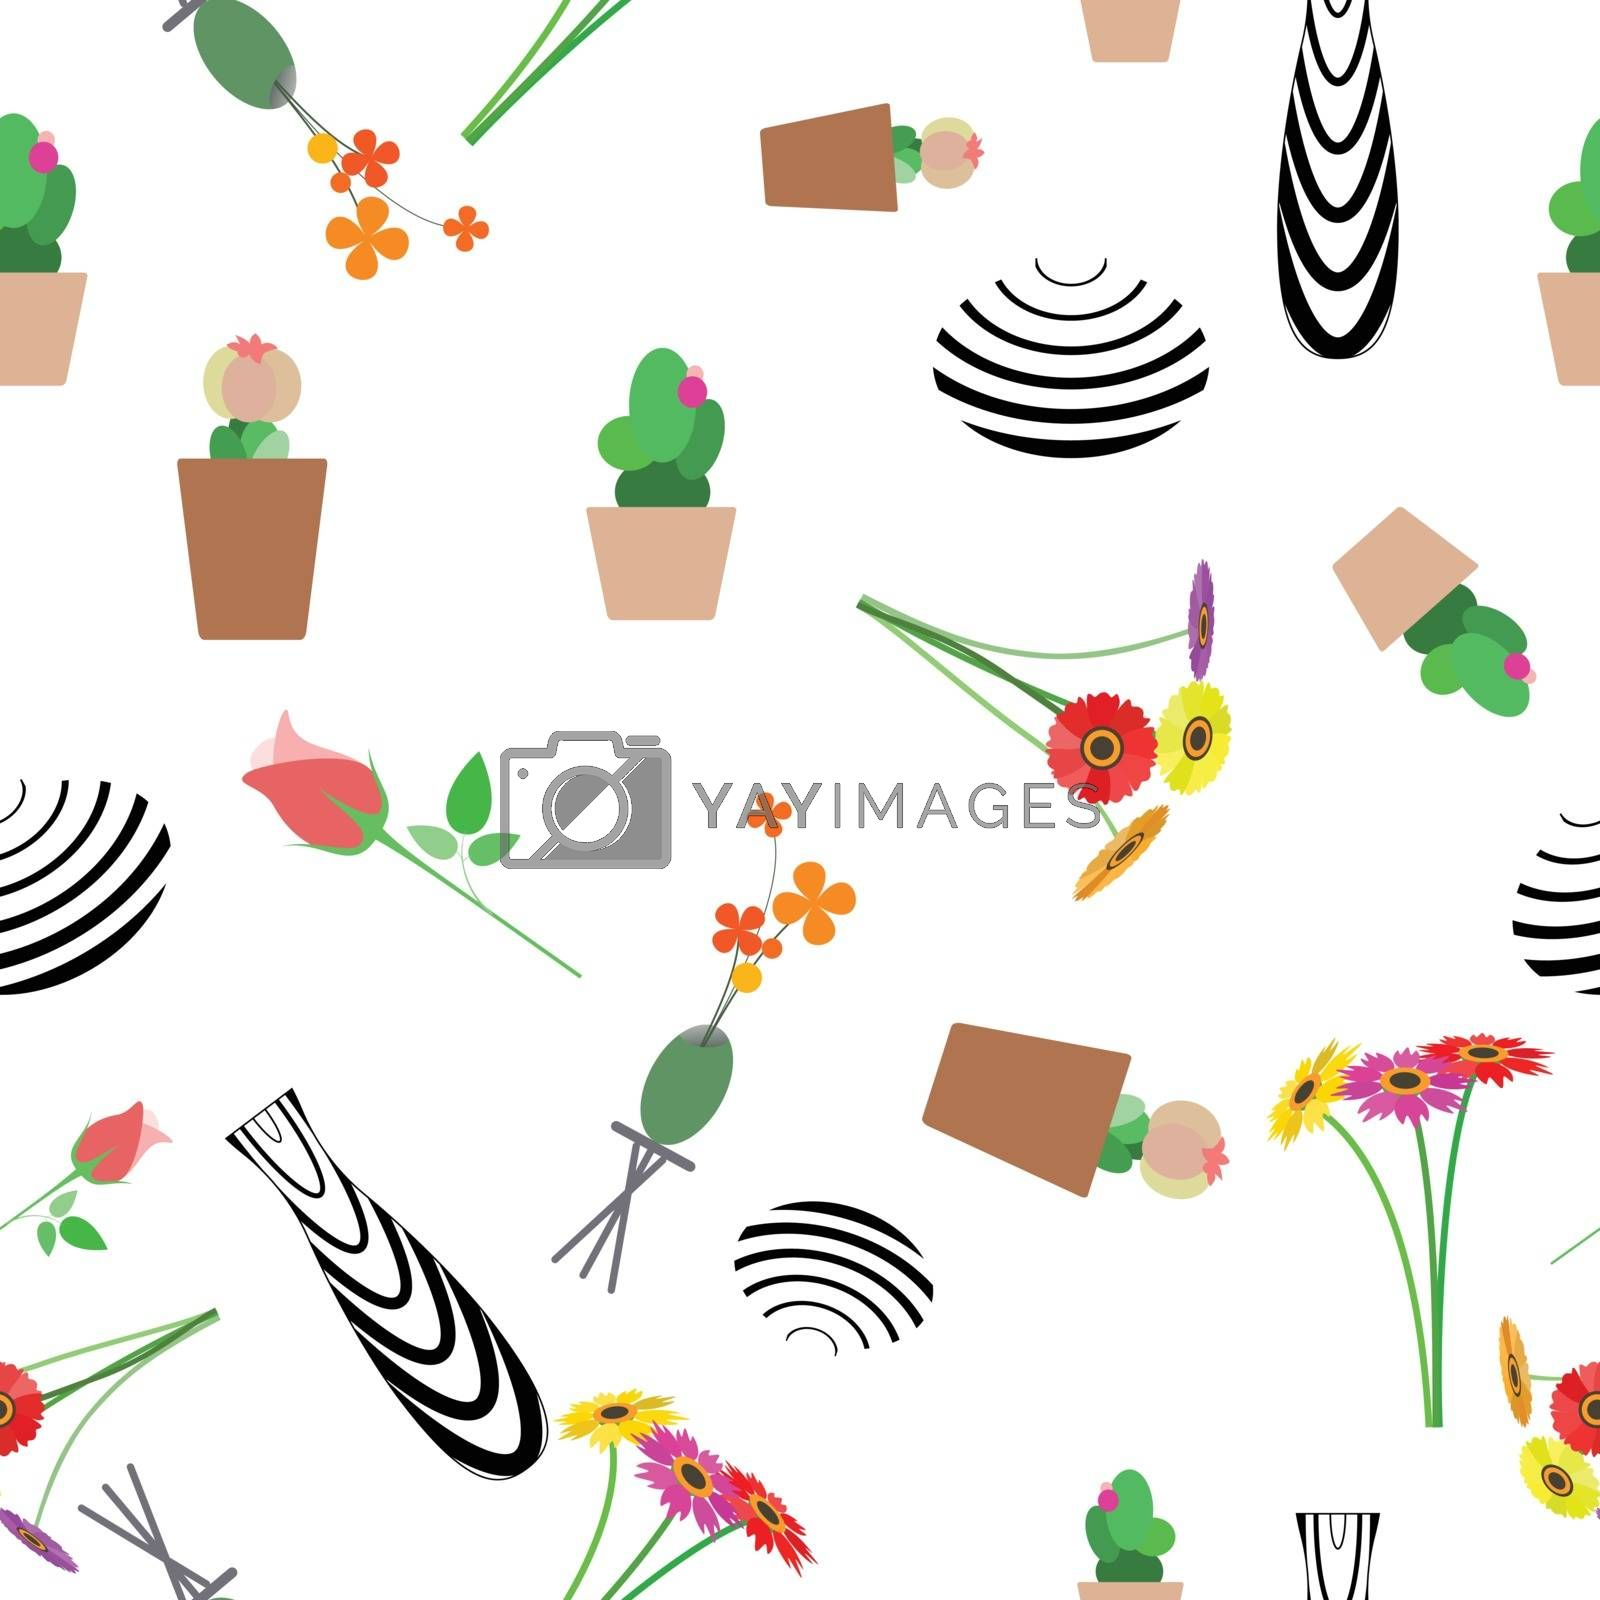 Abstract cactus with case seamless background.